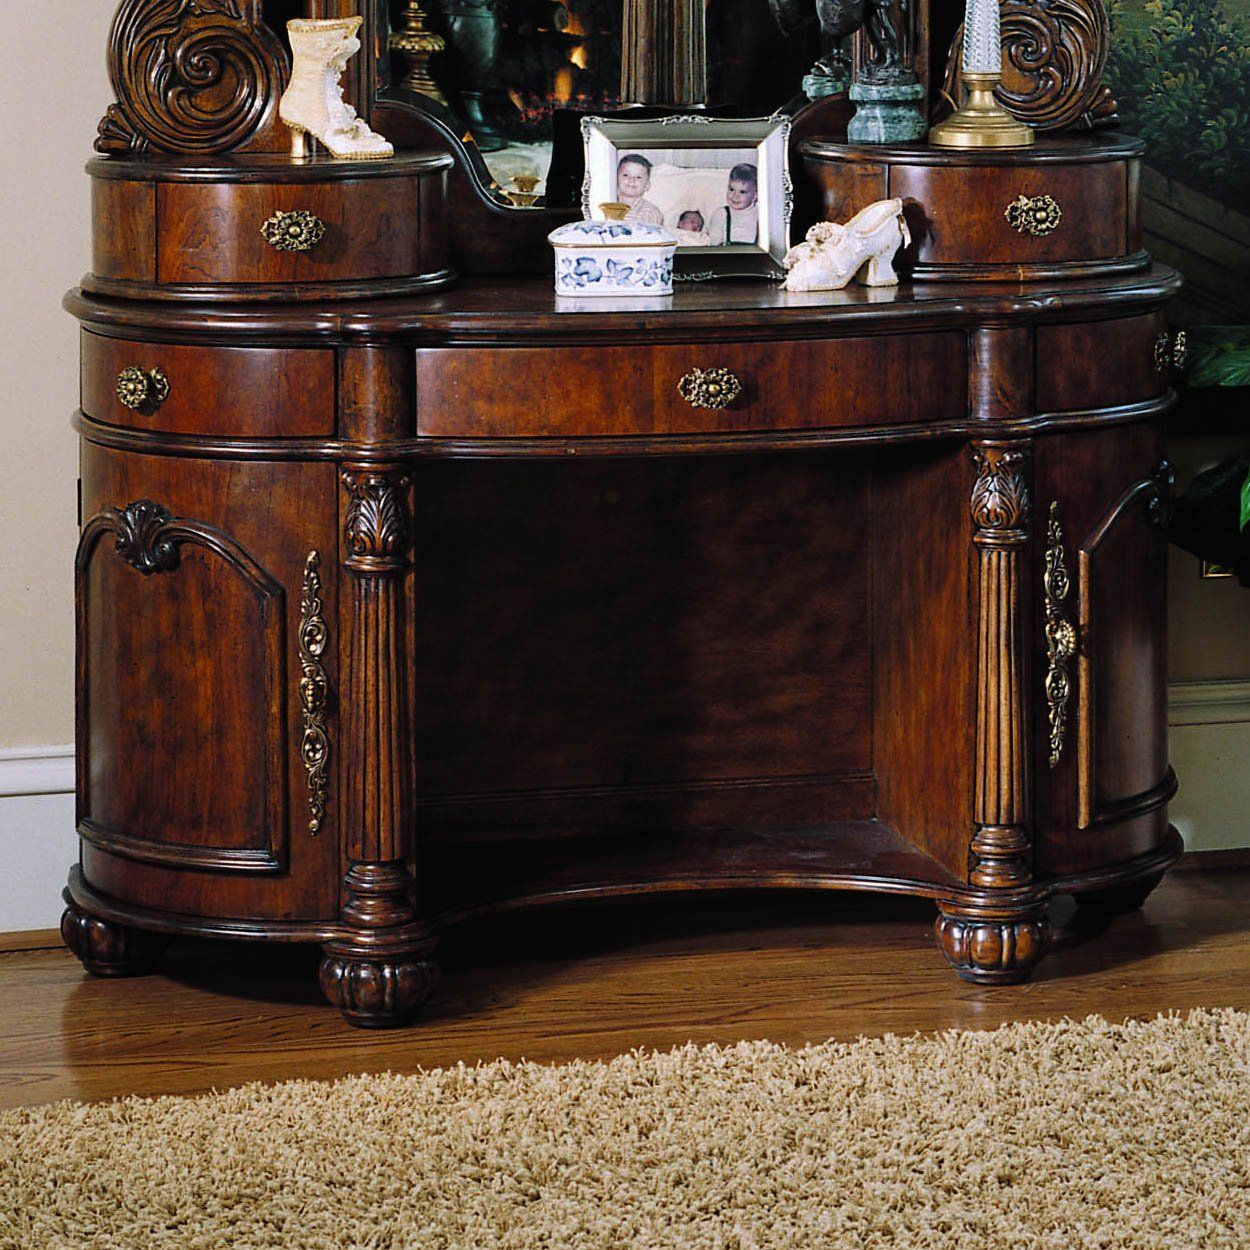 Bedroom Set With Vanity Pulaski Furniture 242127 Bedroom Vanity Edwardian 1500